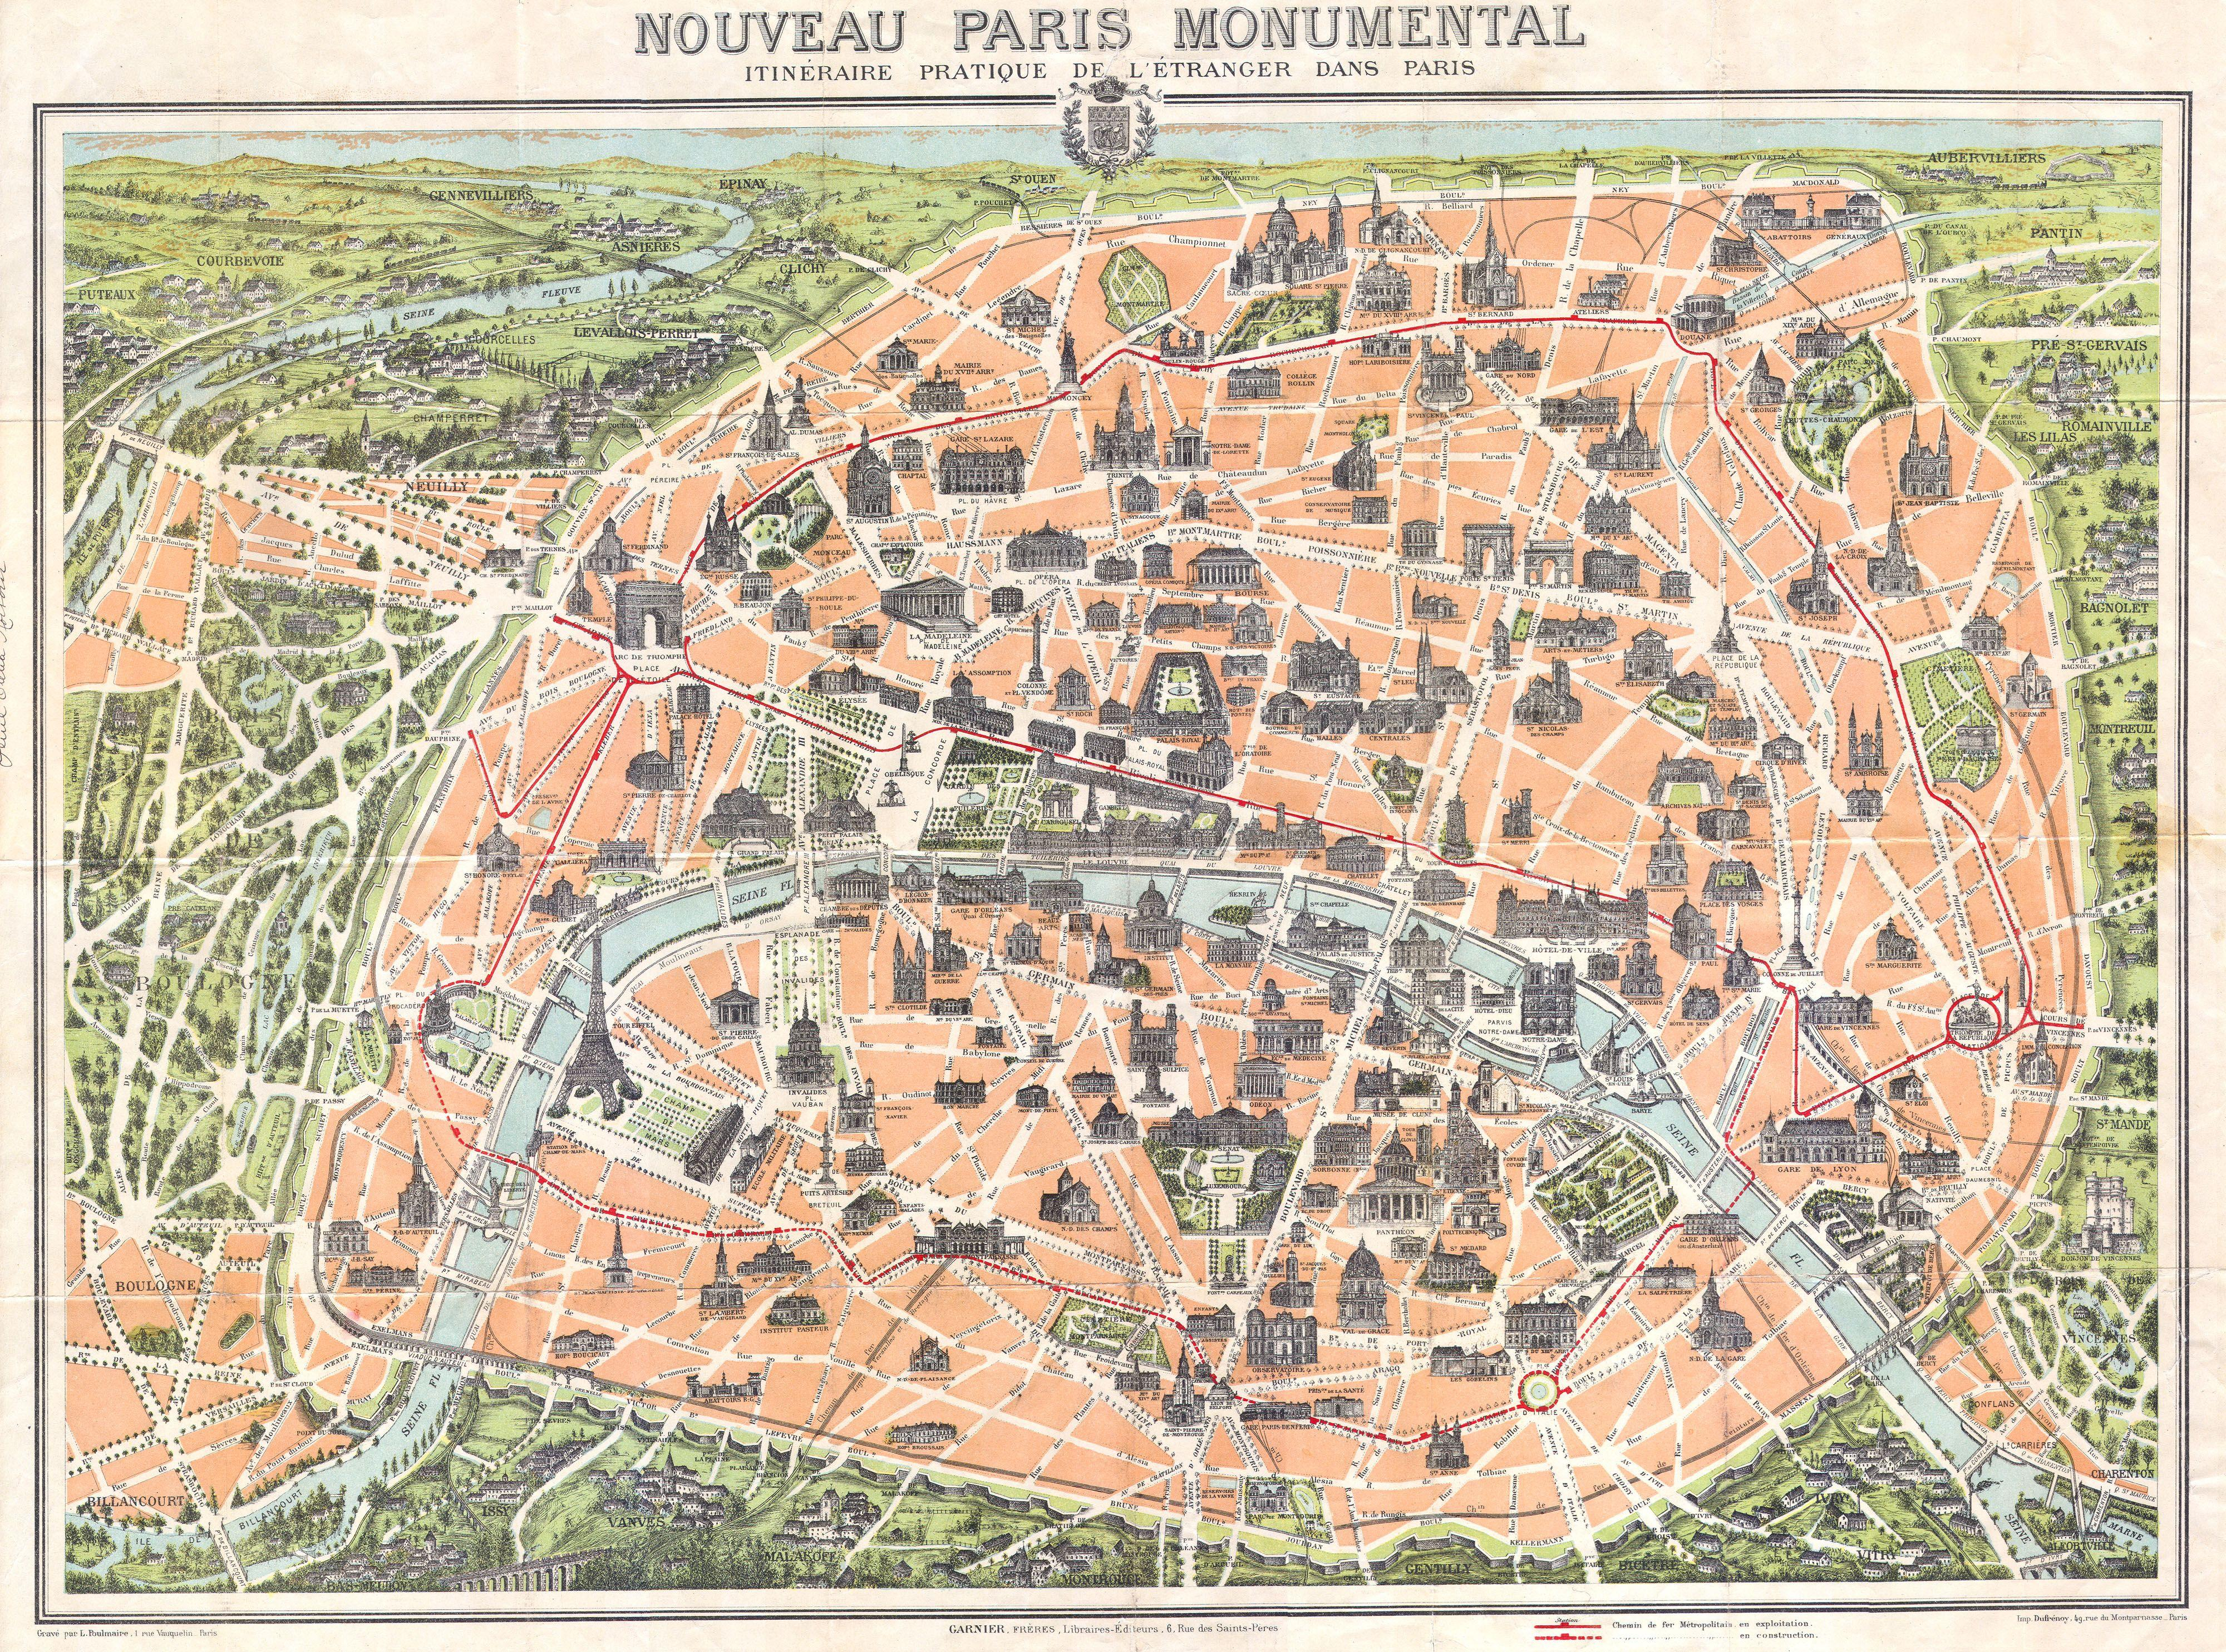 Maps Update 639482 A Map of Paris France Contemporary and – Map of Paris with Monuments